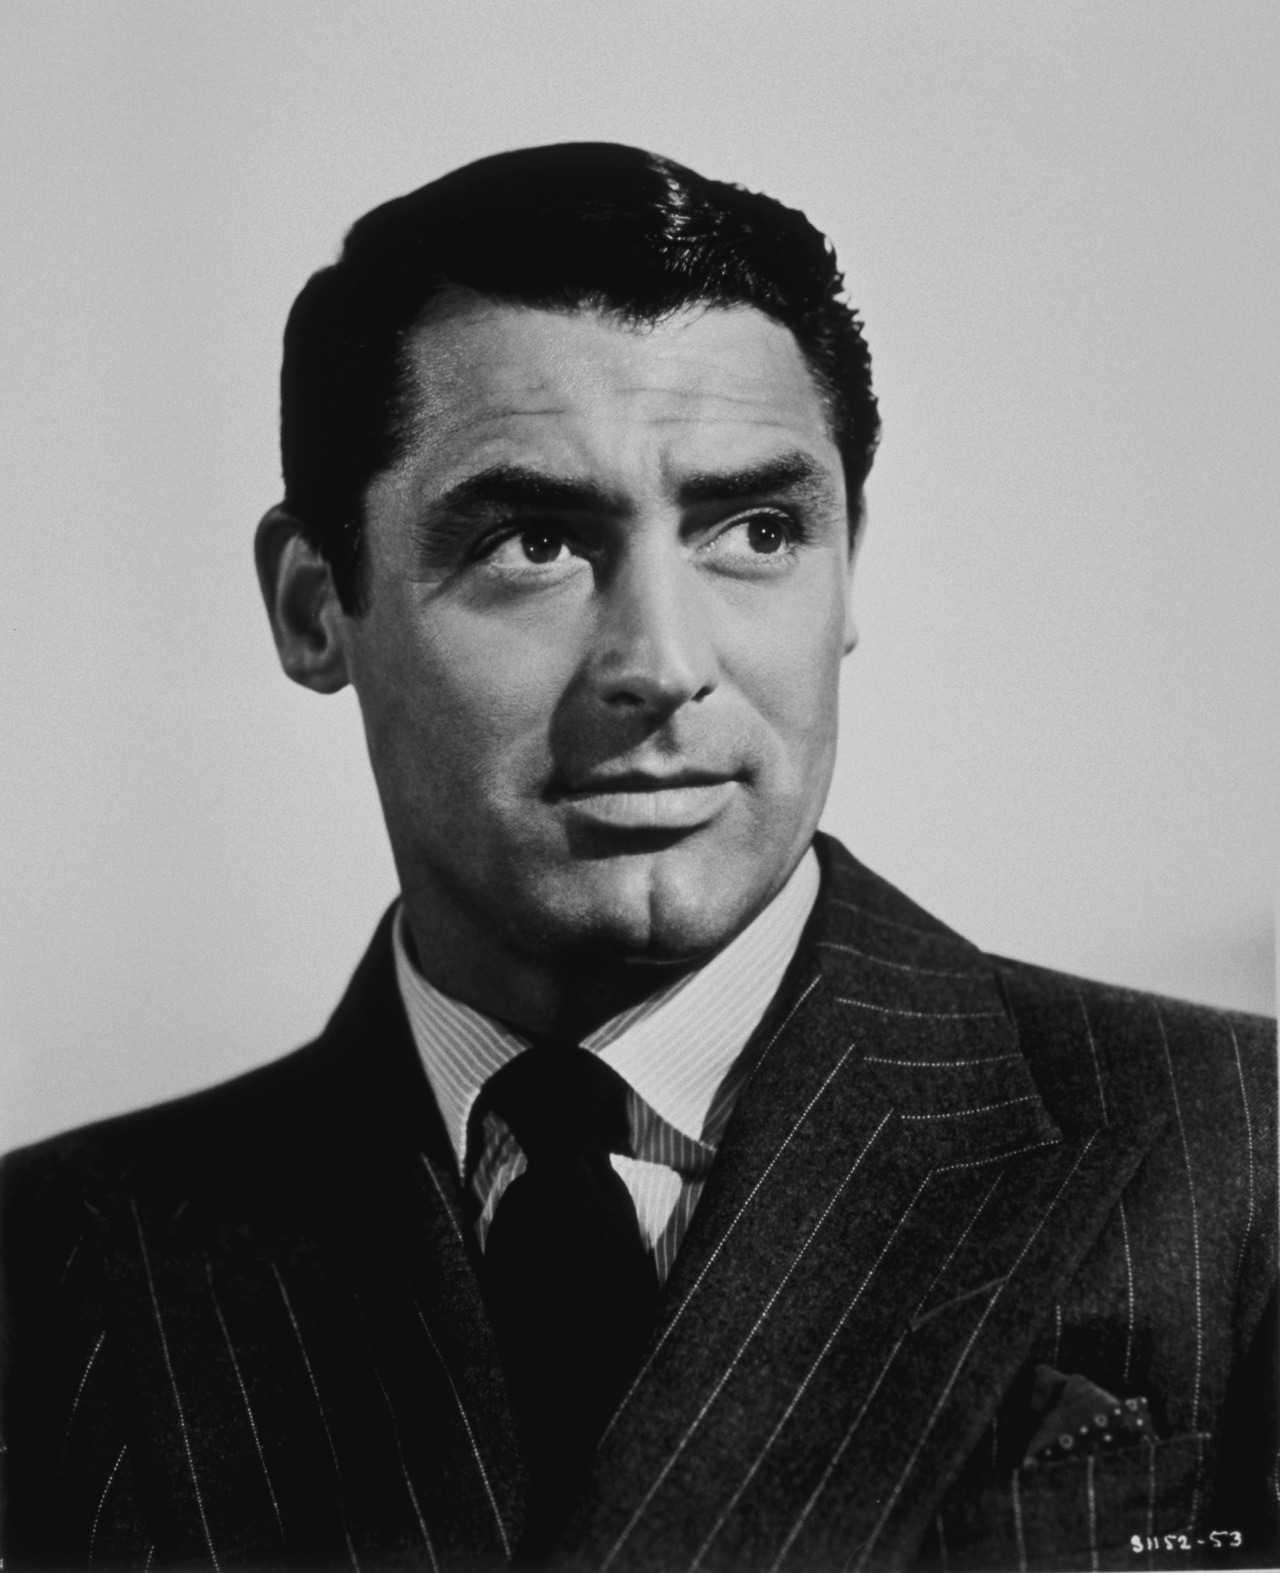 """""""I pretended to be somebody I wanted to be until finally I became that person. Or he became me."""" The stunning and singular Cary Grant was born Archibald Leach on this day in 1904. ❤️ https://t.co/ZuXxu1278X"""